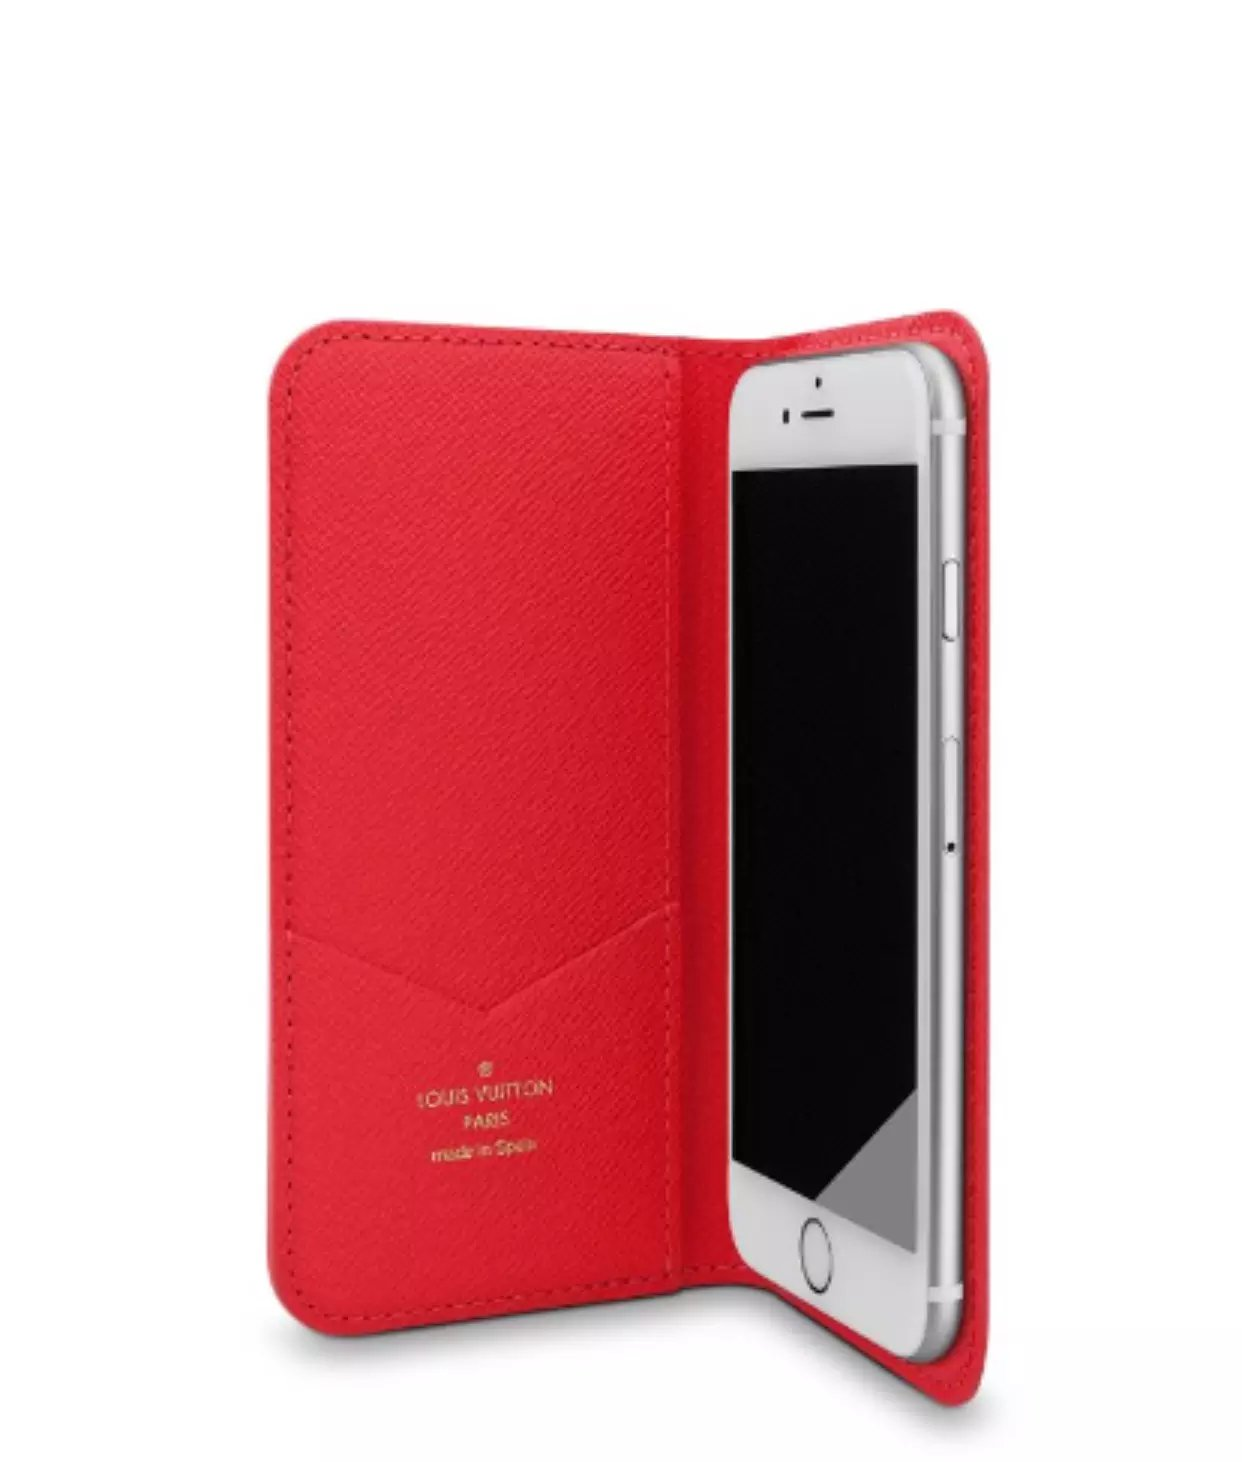 iphone klapphülle handyhülle foto iphone Louis Vuitton iphone6 hülle 6lbst gestaltete handyhülle iphone hülle gummi handyhülle online gestalten iphone 6 hülle holz silikon cover handyhülle mit akku iphone 6